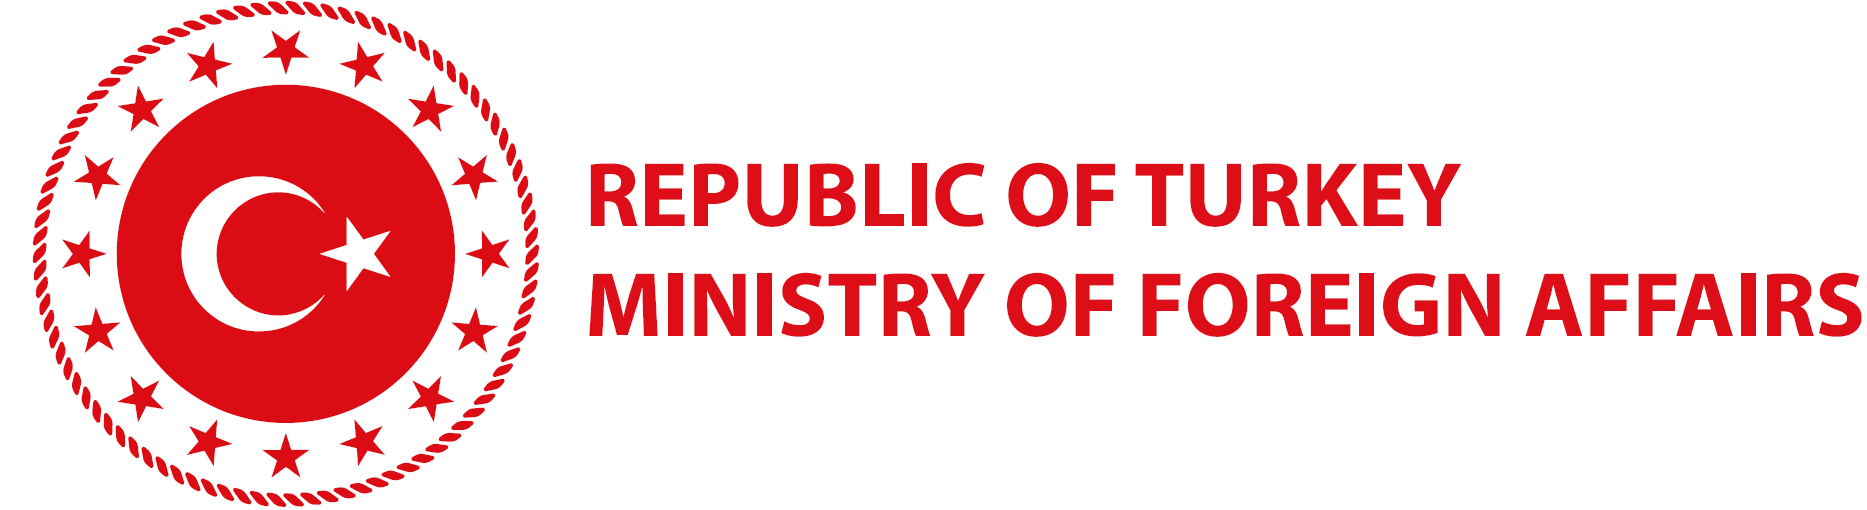 Ministry of Foreign Affairs (Turkey)